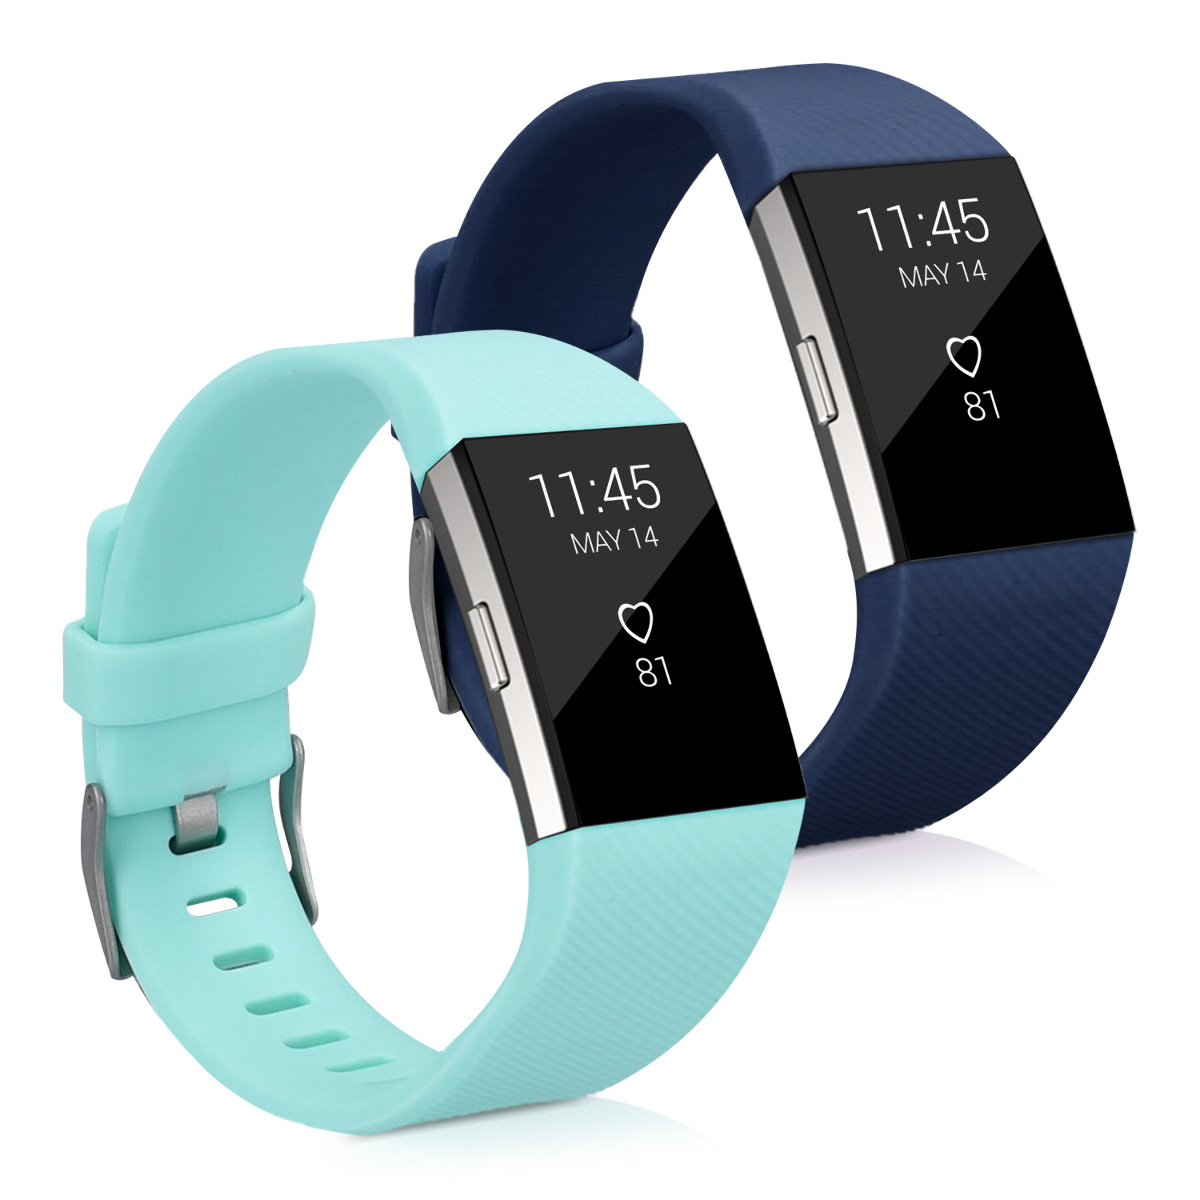 2x sport ersatz armband f r fitbit charge 2 dunkelblau. Black Bedroom Furniture Sets. Home Design Ideas